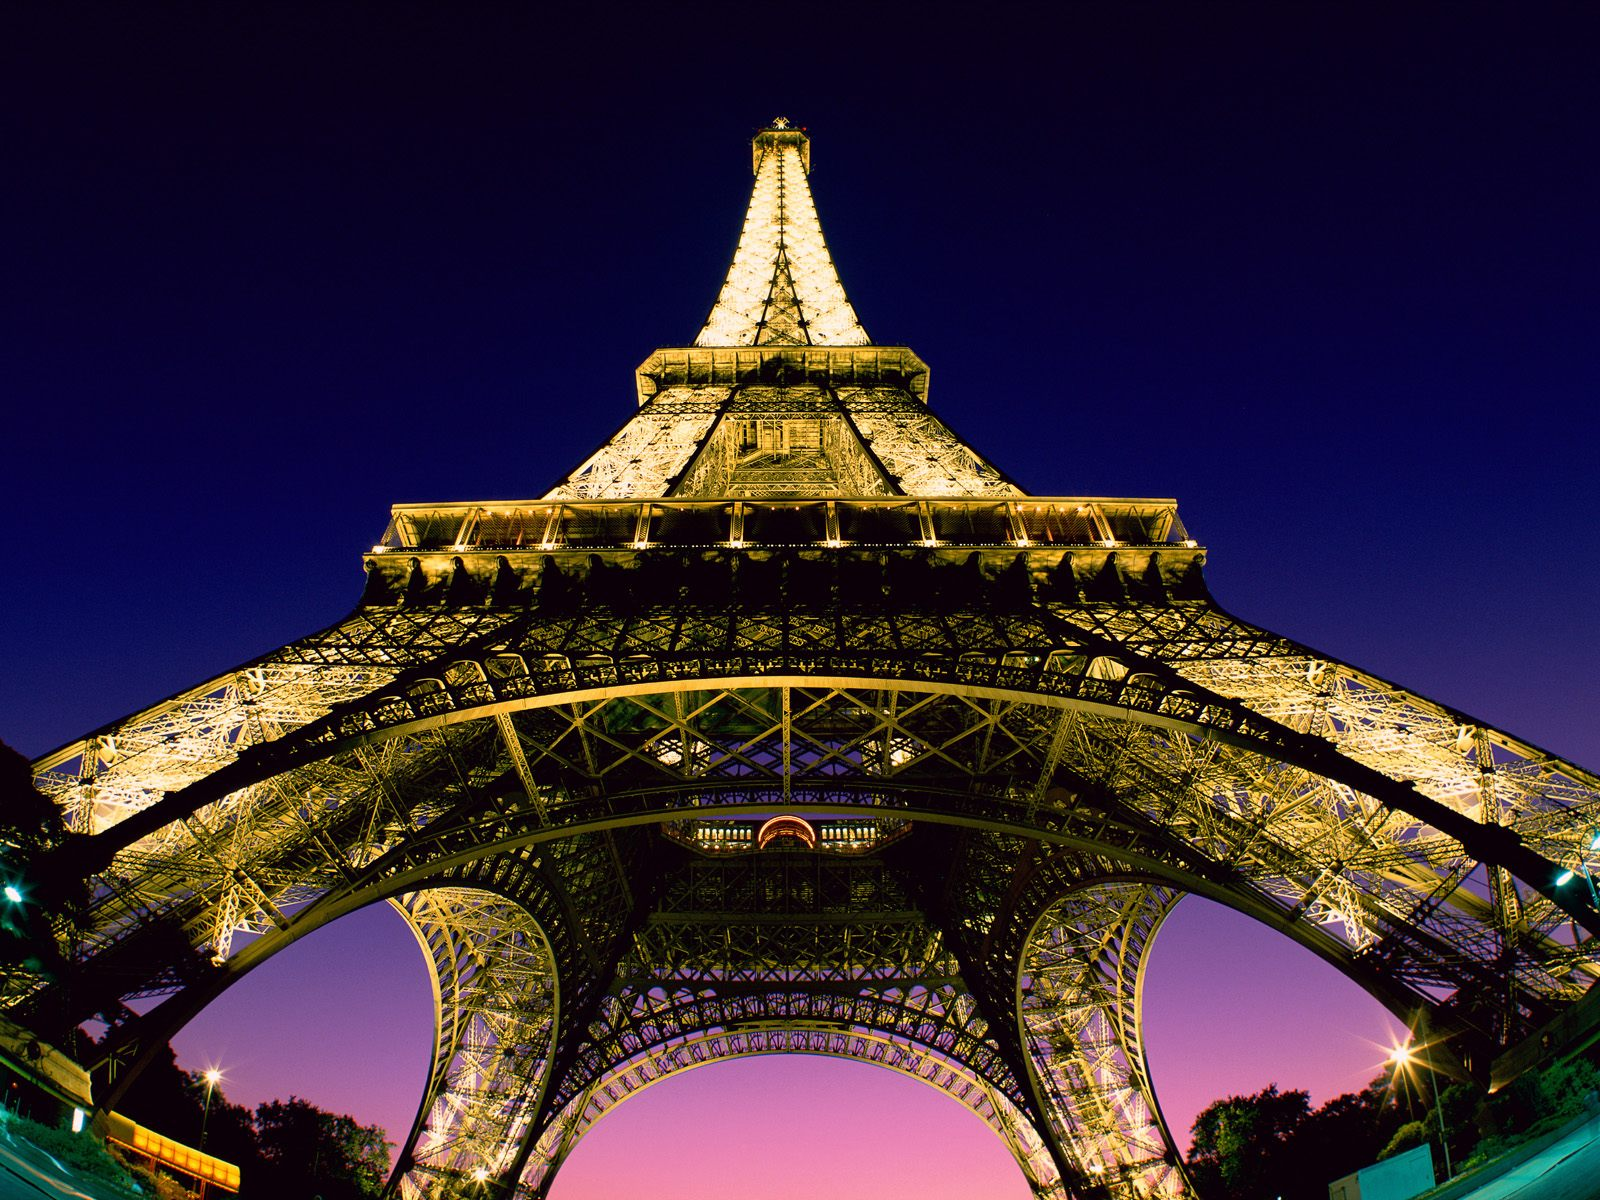 eiffel tower - photo #15